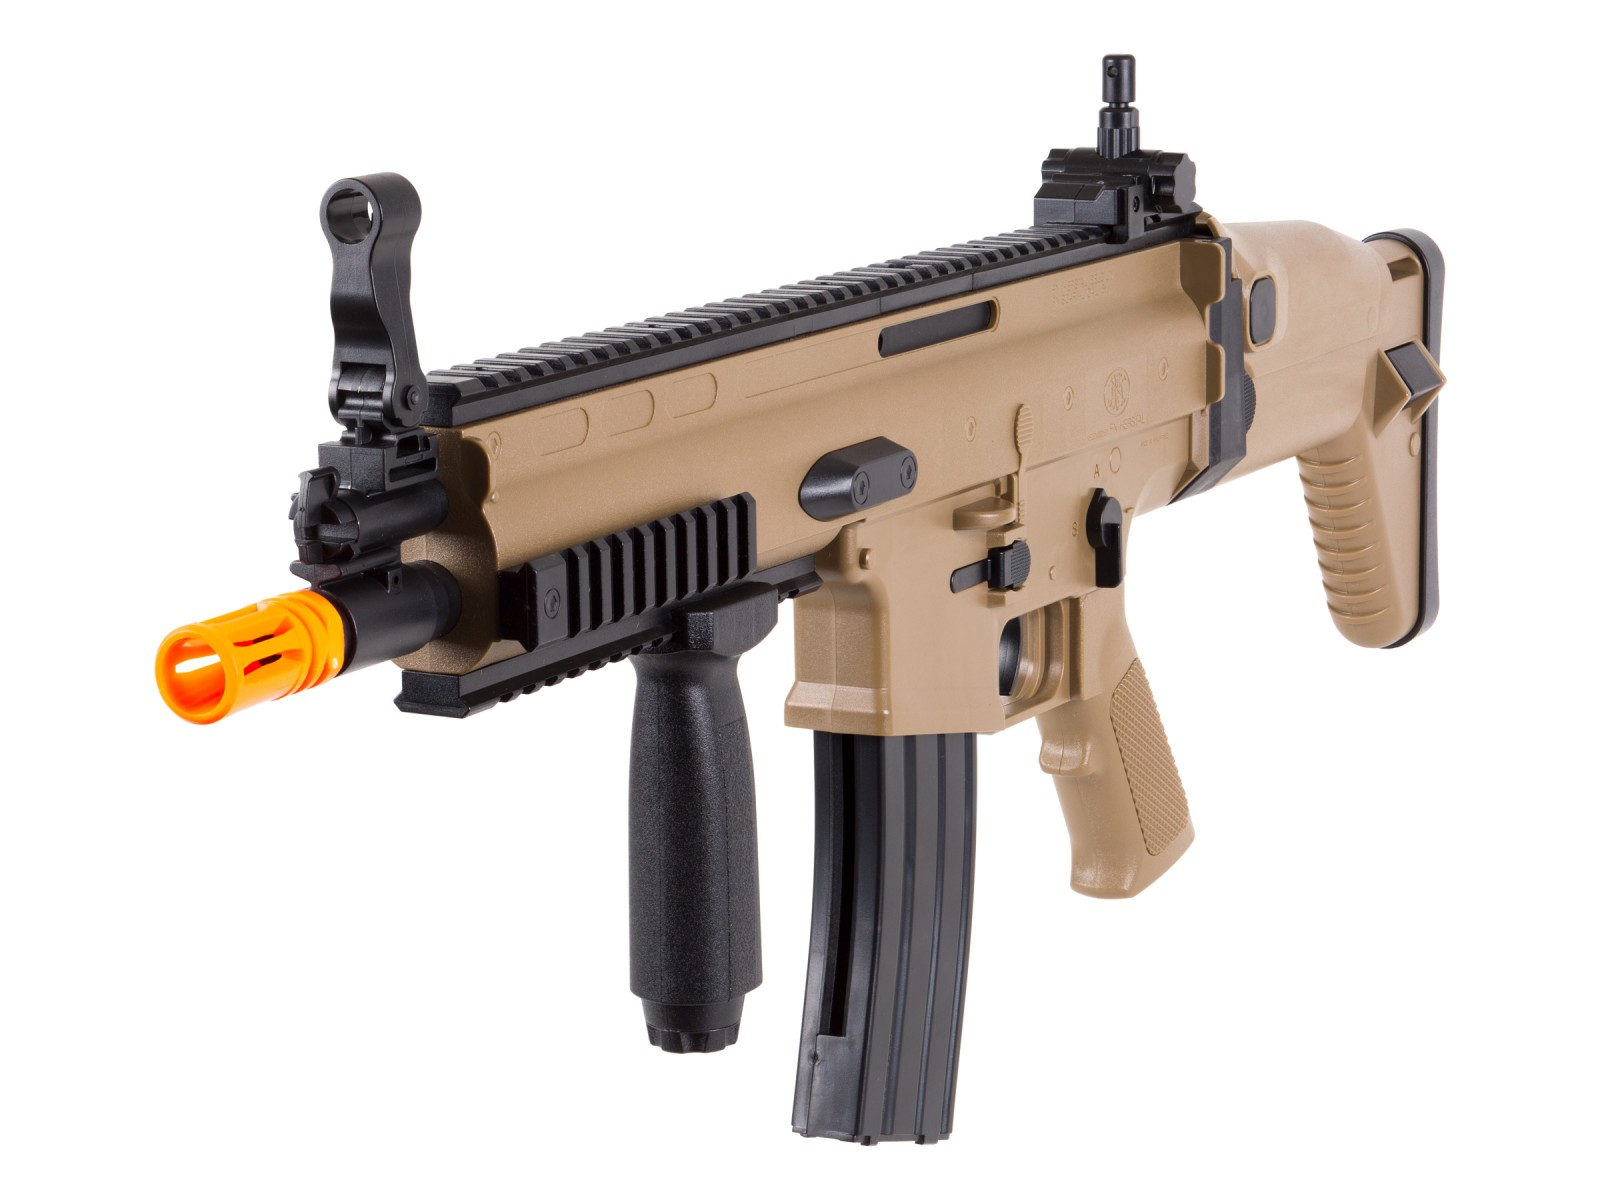 FN Herstal SCAR-L Spring Airsoft Rifle, Tan 6mm